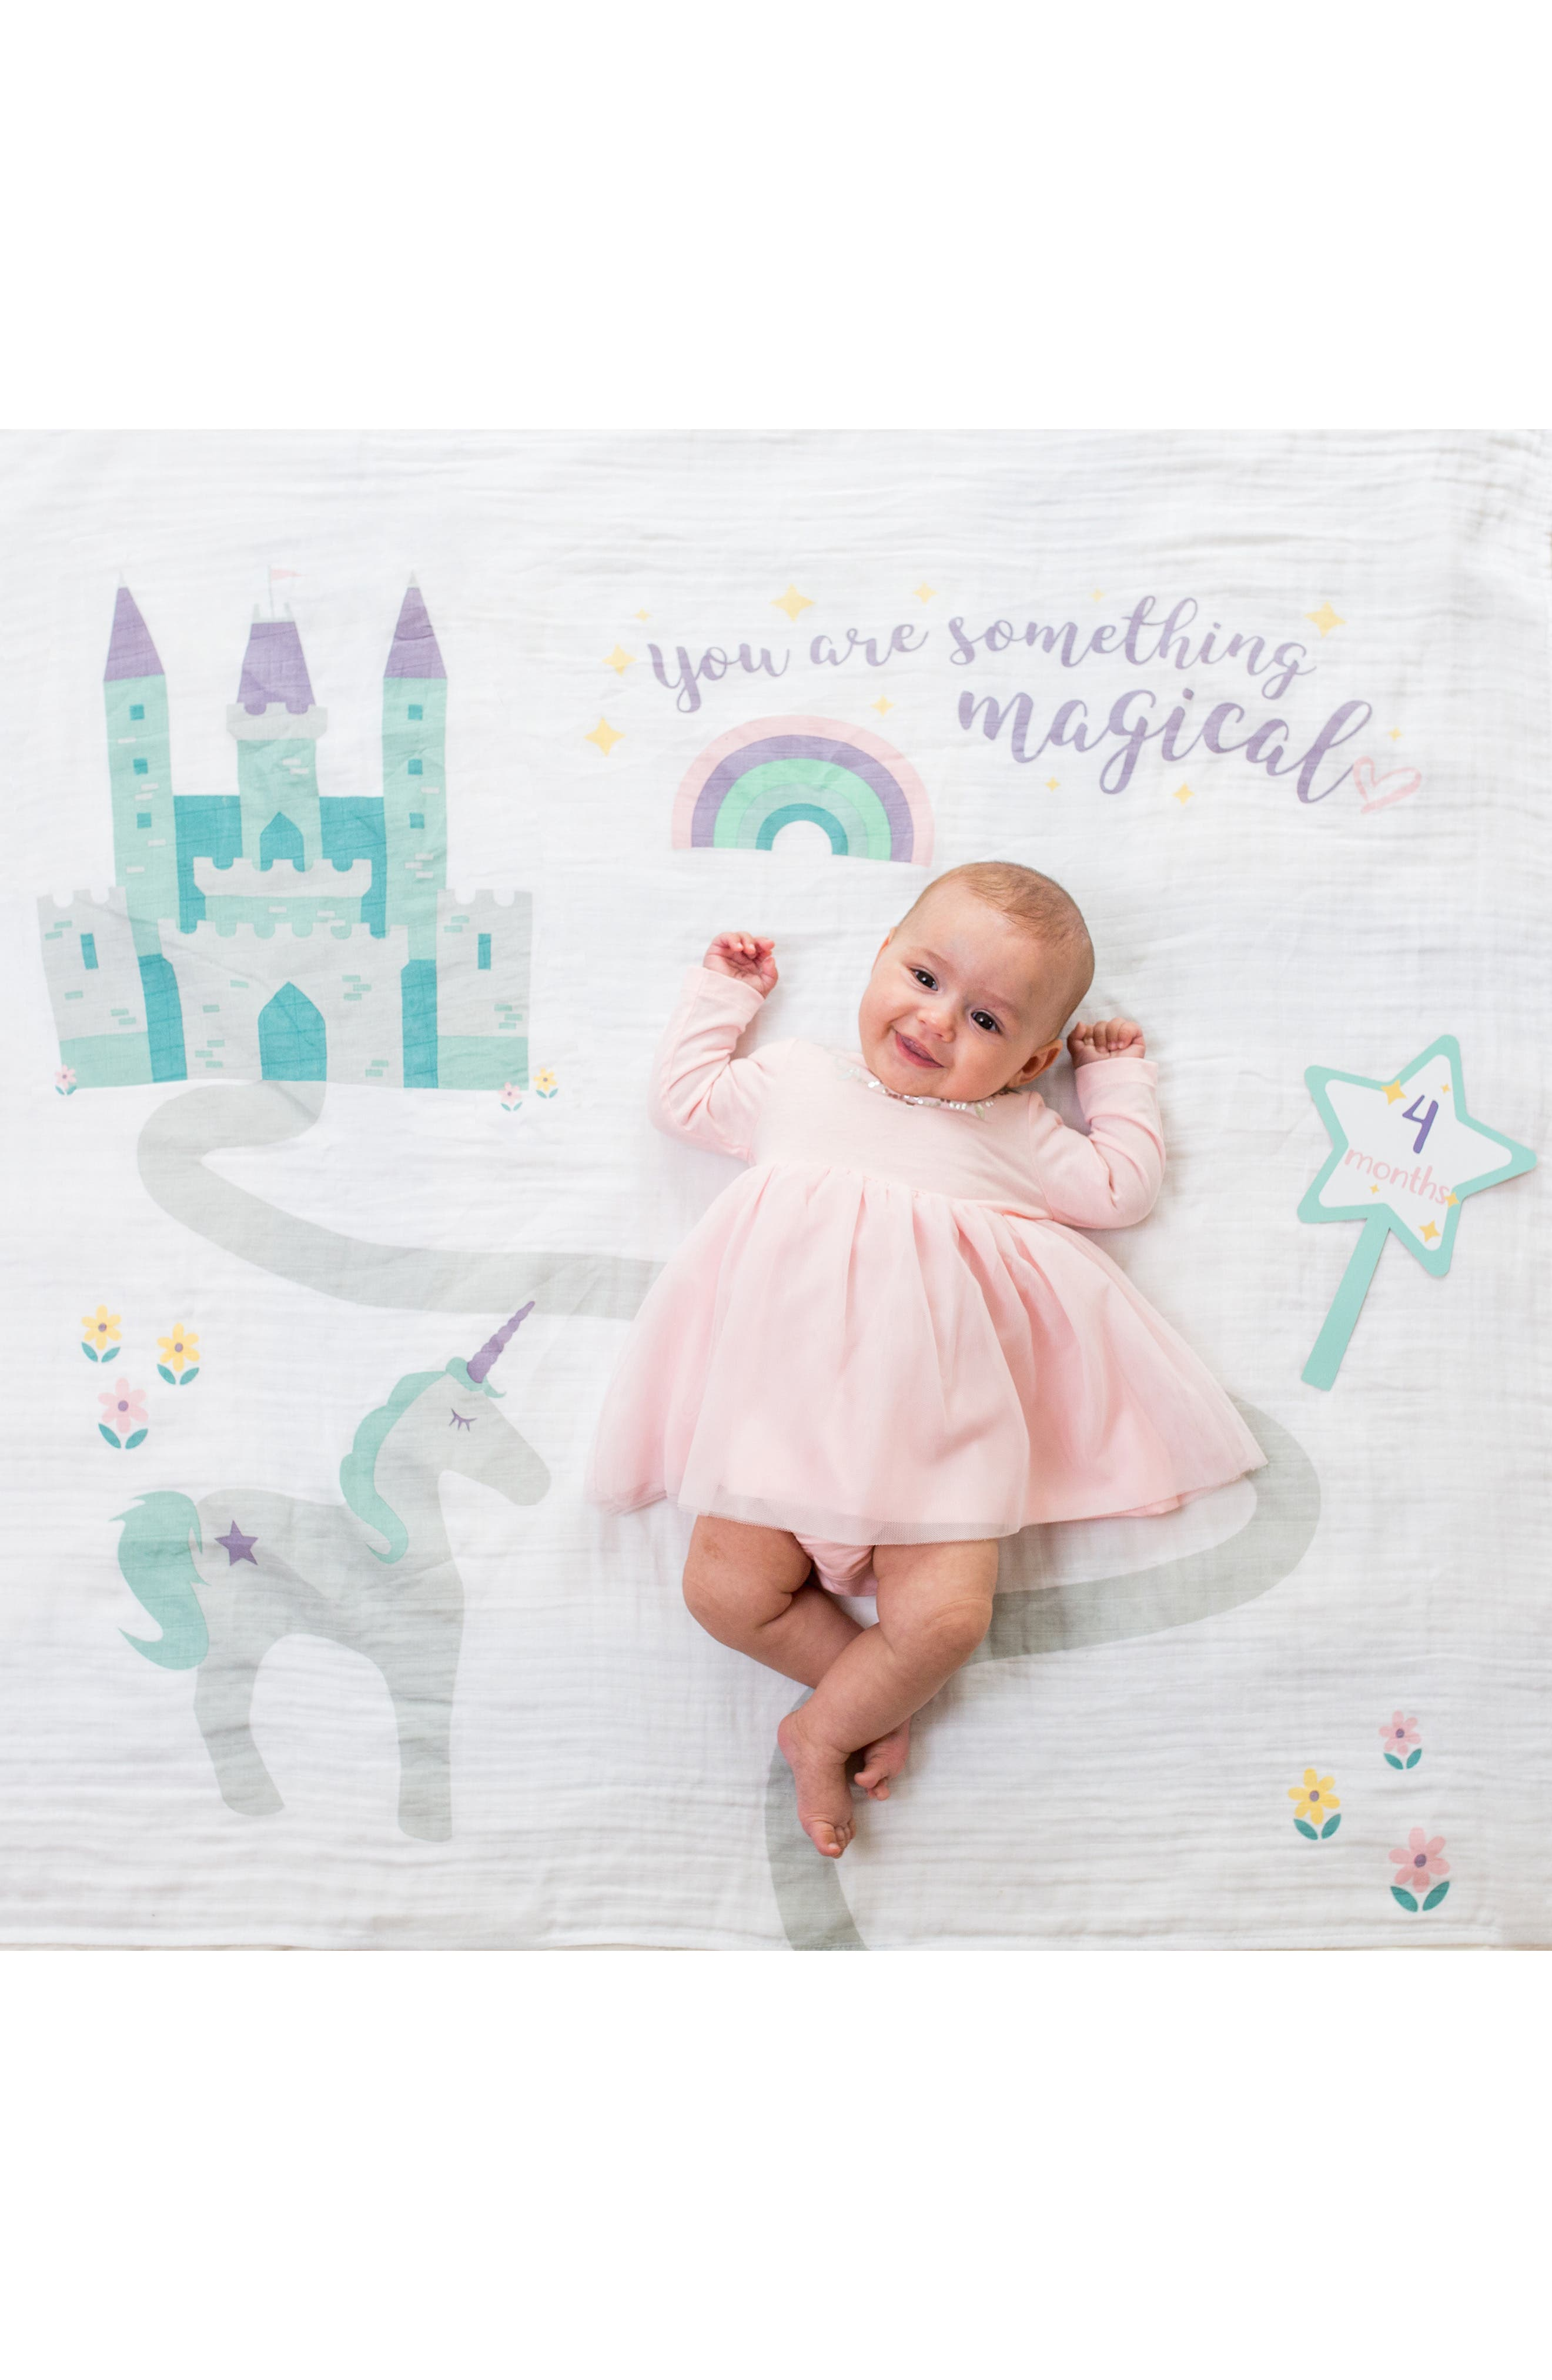 LULUJO, Baby's First Year - Something Magical Muslin Blanket & Milestone Card Set, Alternate thumbnail 6, color, LAVENDER